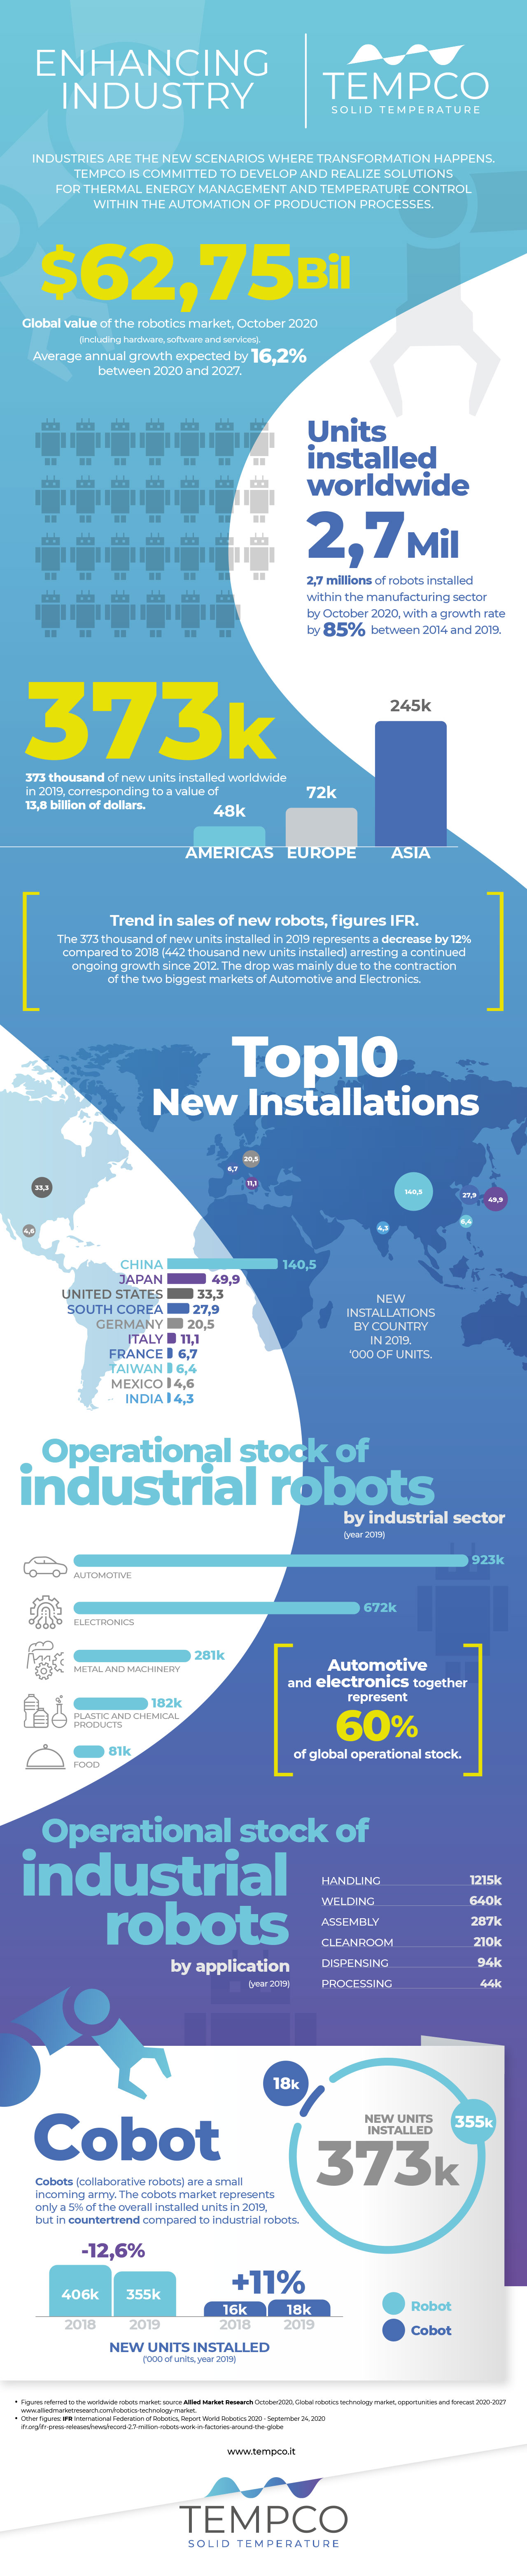 Infographic - Enhancing industry